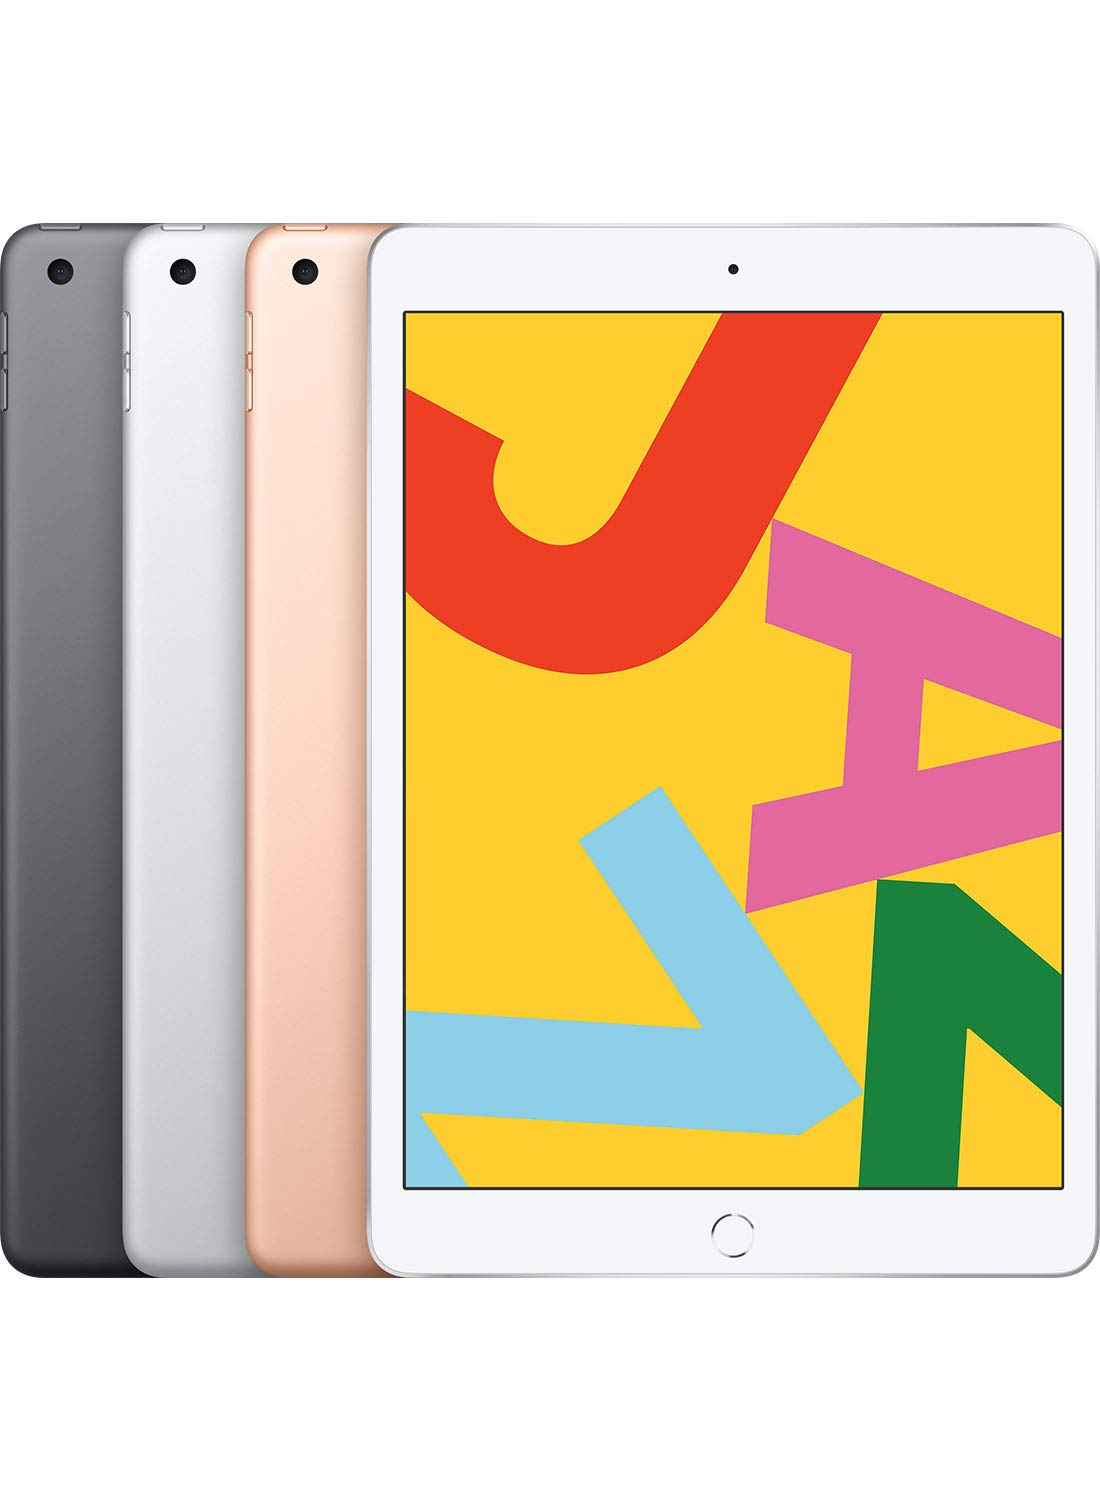 The new Apple iPad - the gift every college student wants.